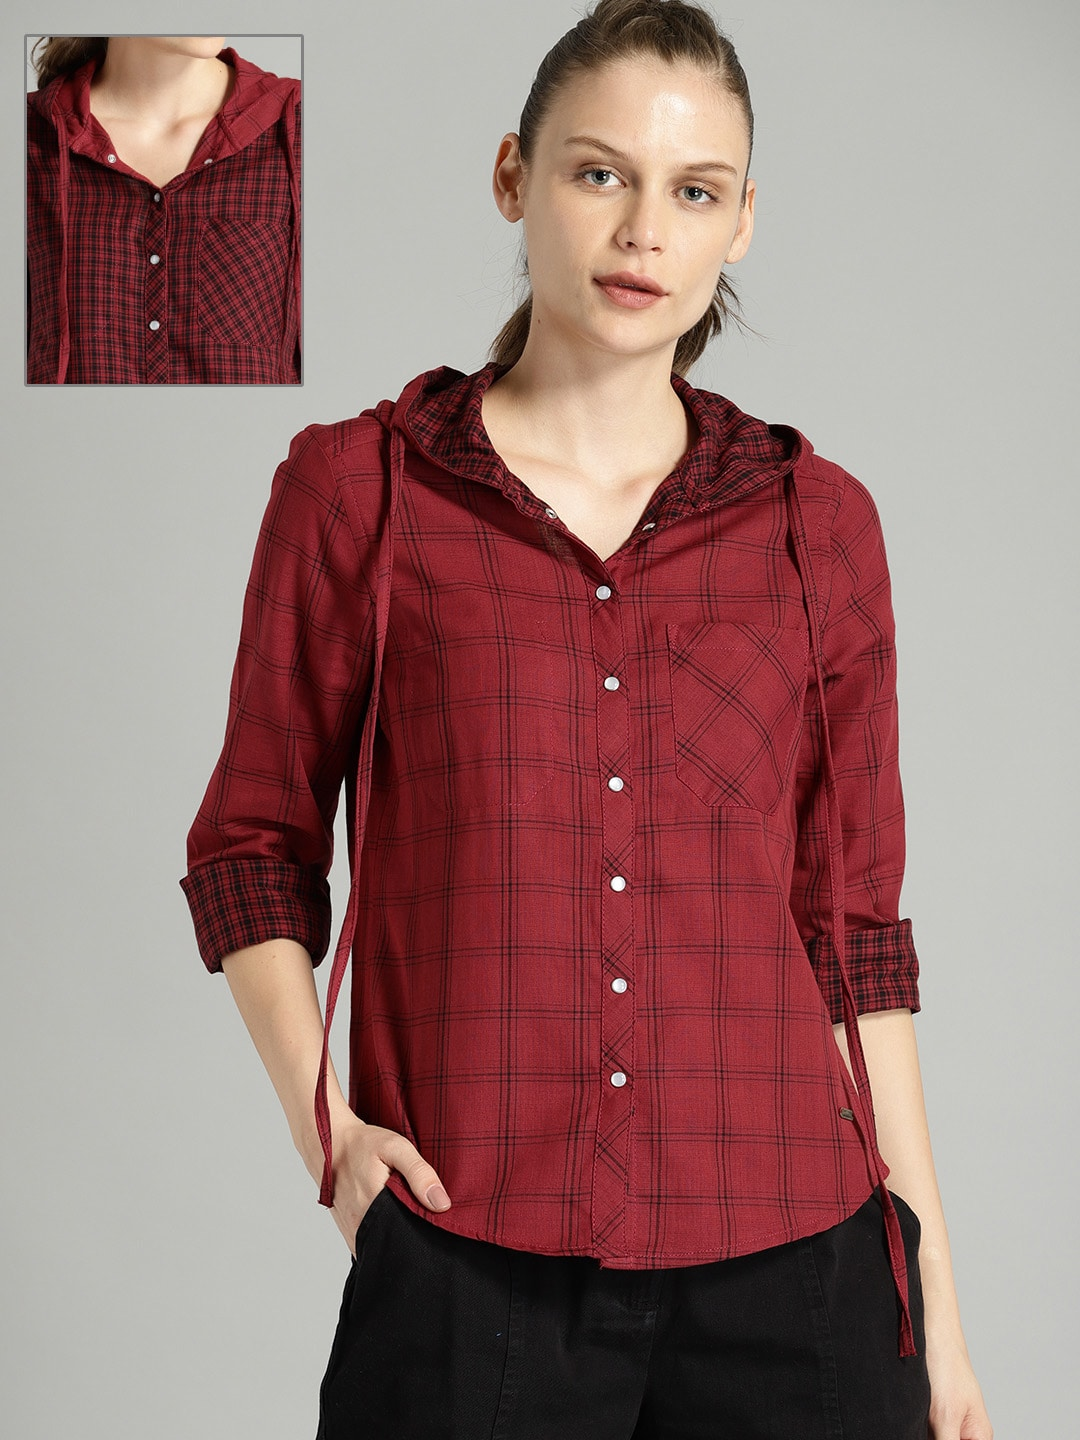 2bfd0c49edd Reversible Shirts - Buy Reversible Shirts online in India